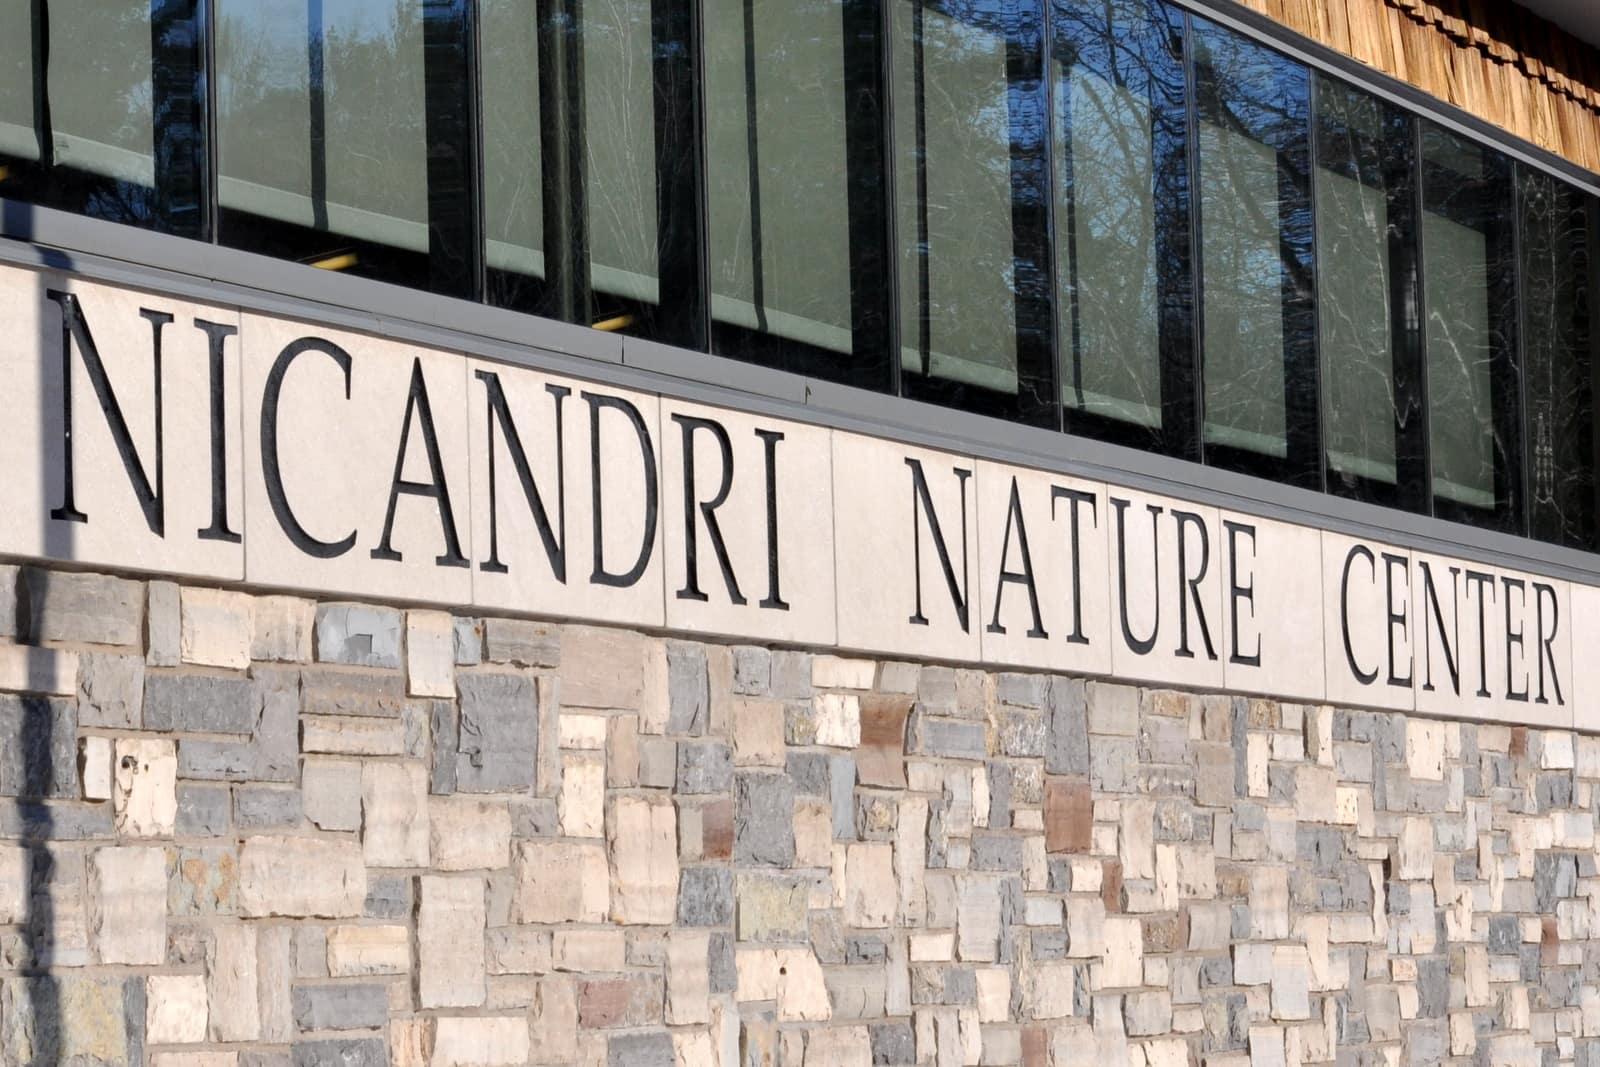 st-lawrence-county-nicandri-nature-center-2020